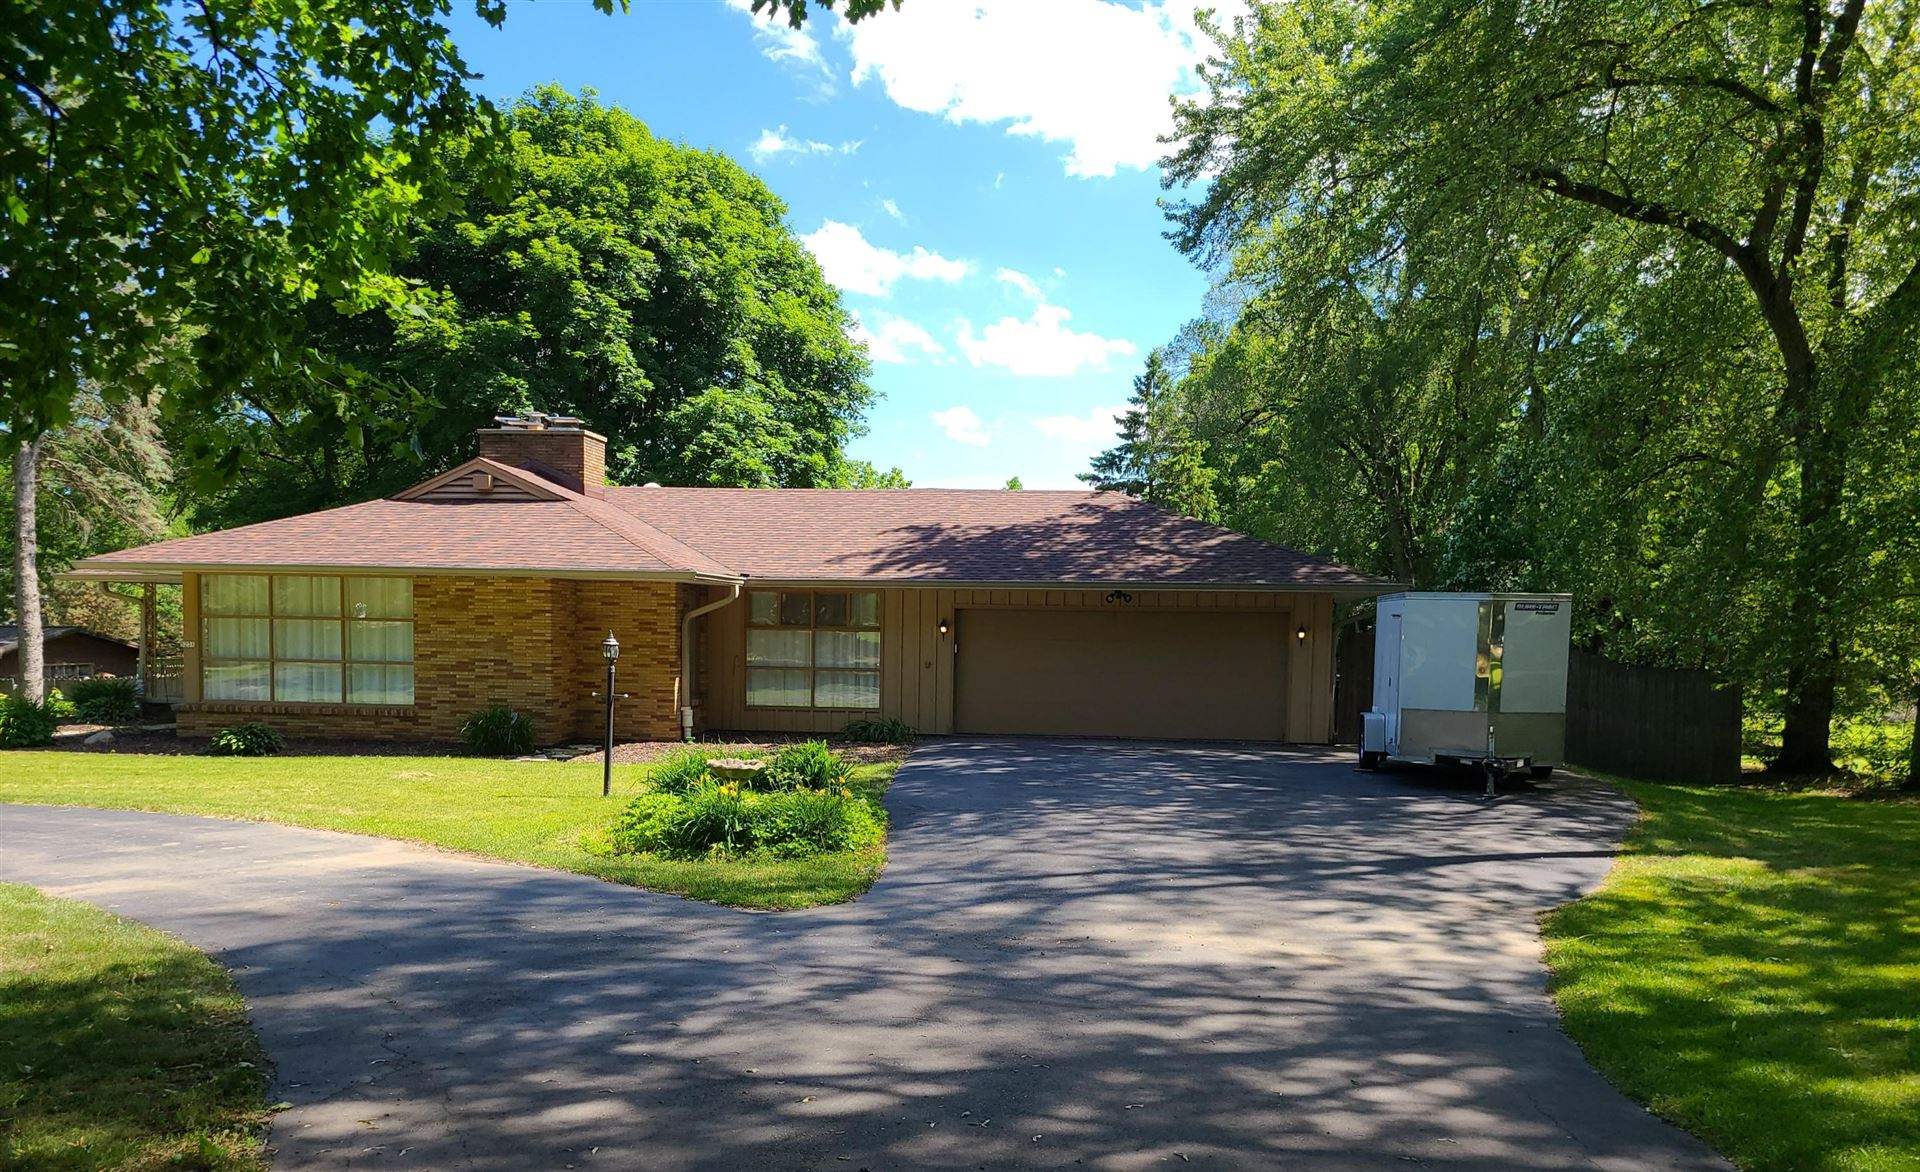 5231 Chicory Rd, Mount Pleasant, WI 53403 - #: 1695845